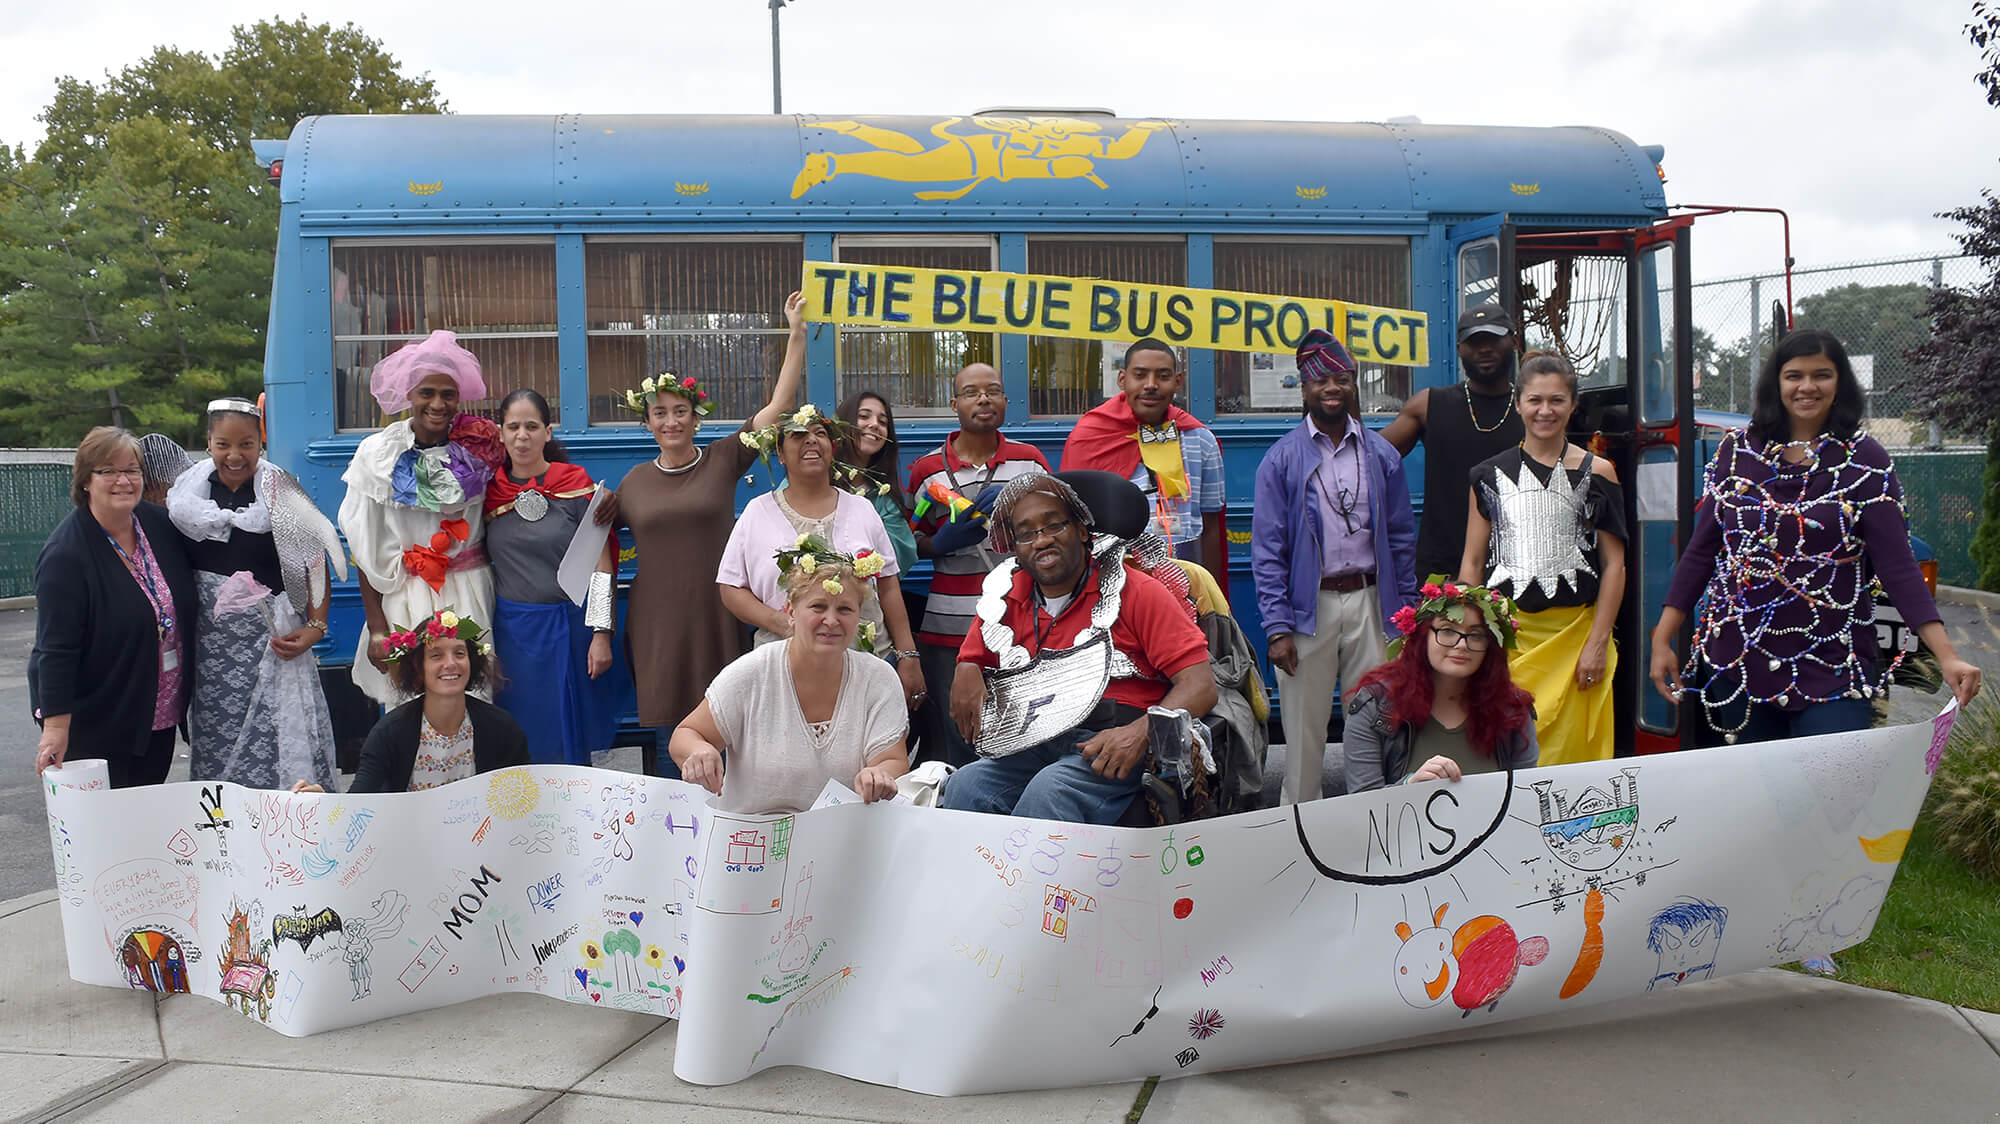 Cohorts in the Blue Bus Project gathered outside of ArTech on their final day together